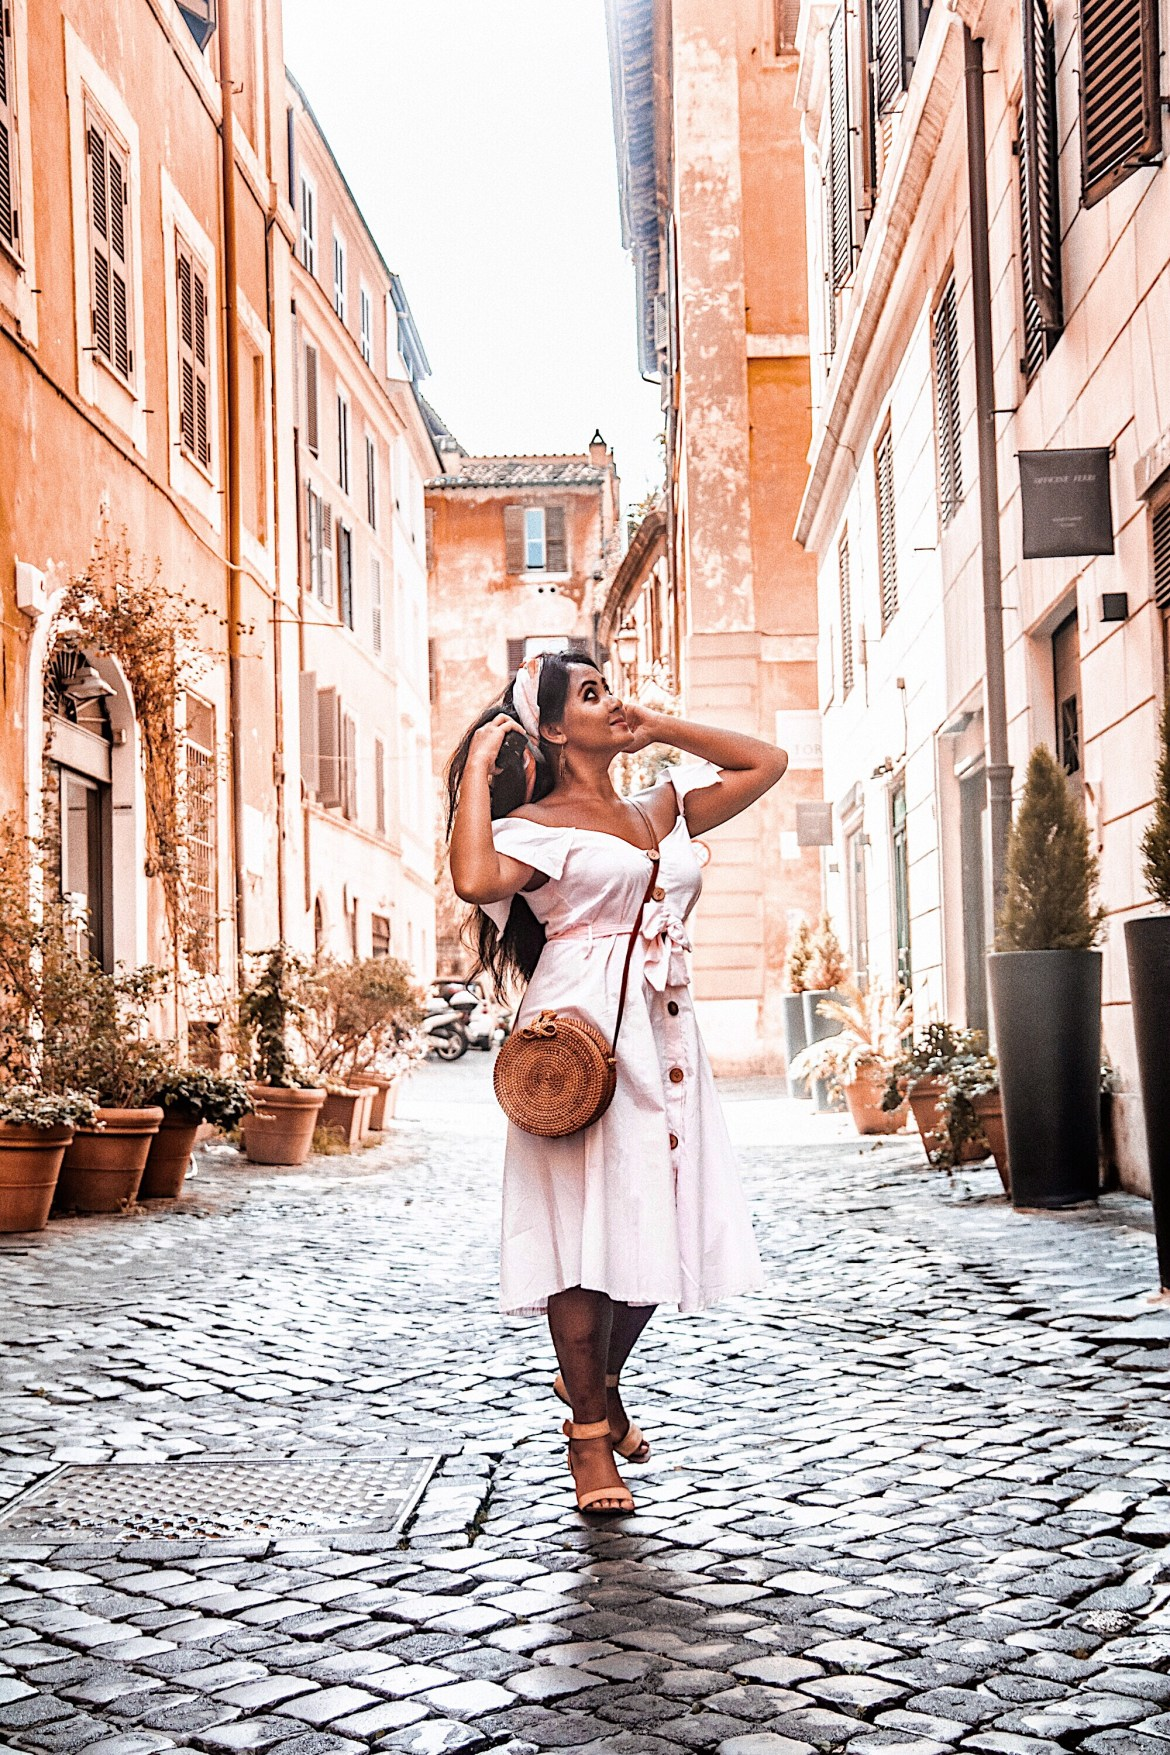 Marjolyn Lago Marj How-To-Wear-Off-Shoulder-Dress-Light-Blush-Pink-Button-Down-Dress-Rattan-Straw-Basket-Bag-Flat-Sandal-Headwrap-Paris-Chic-Style-Fashion-Lookbook-Street-Style-Rome-Italy-ootd Outfit Of The Day-6